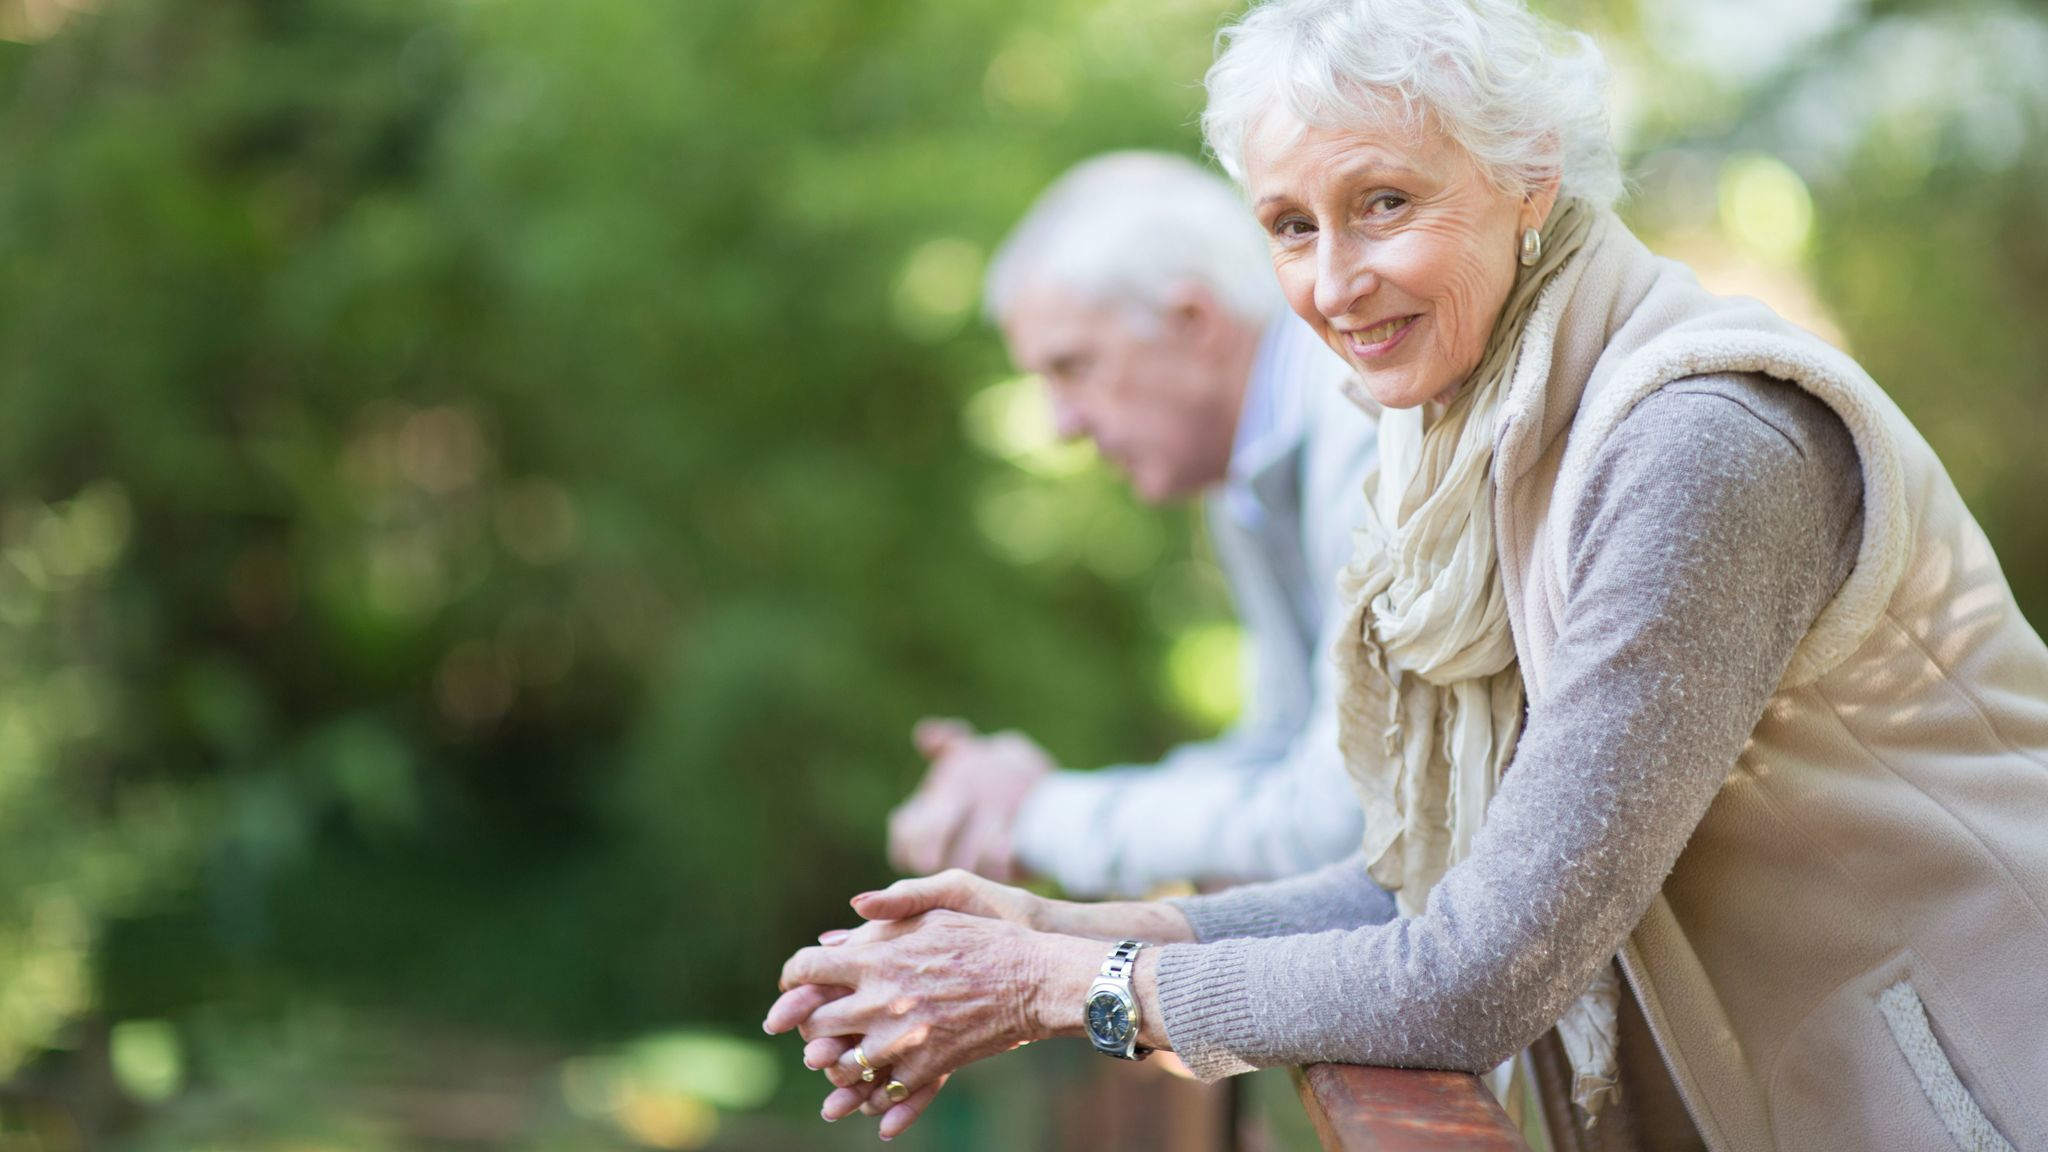 Thinking of buying long-term care insurance? Consider these costs